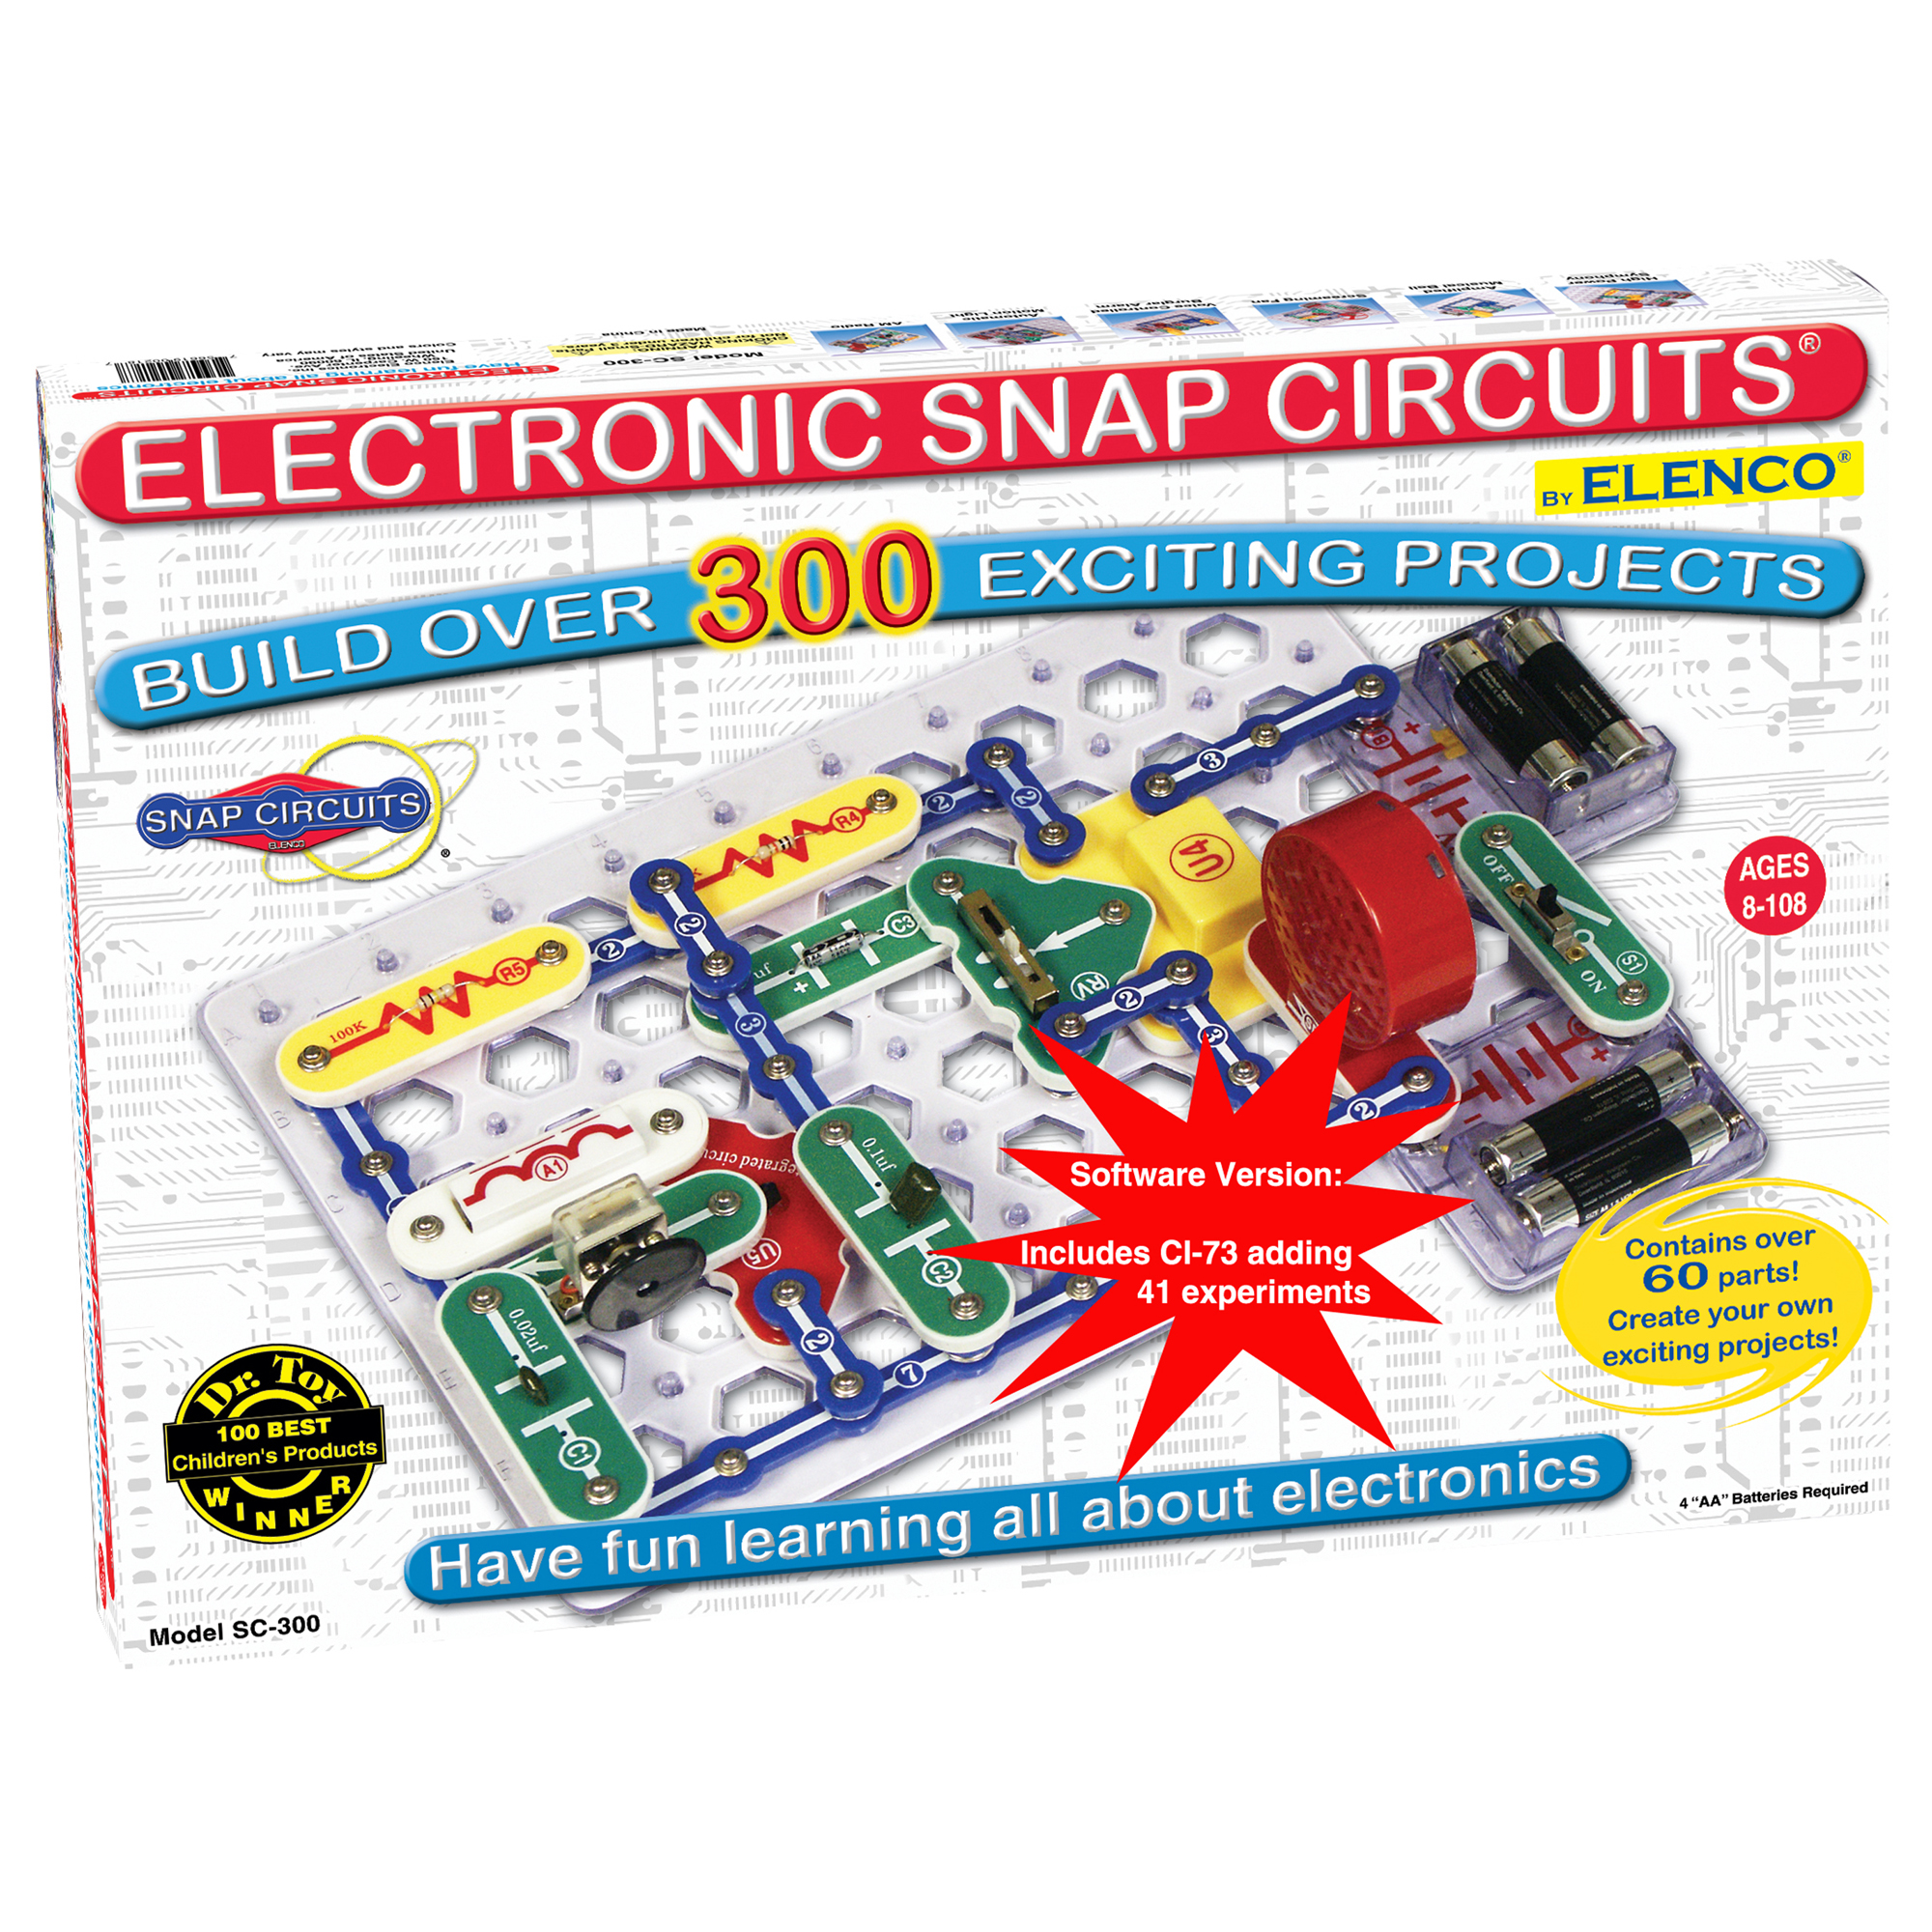 SC300s Snap Circuits w/ Computer Interface